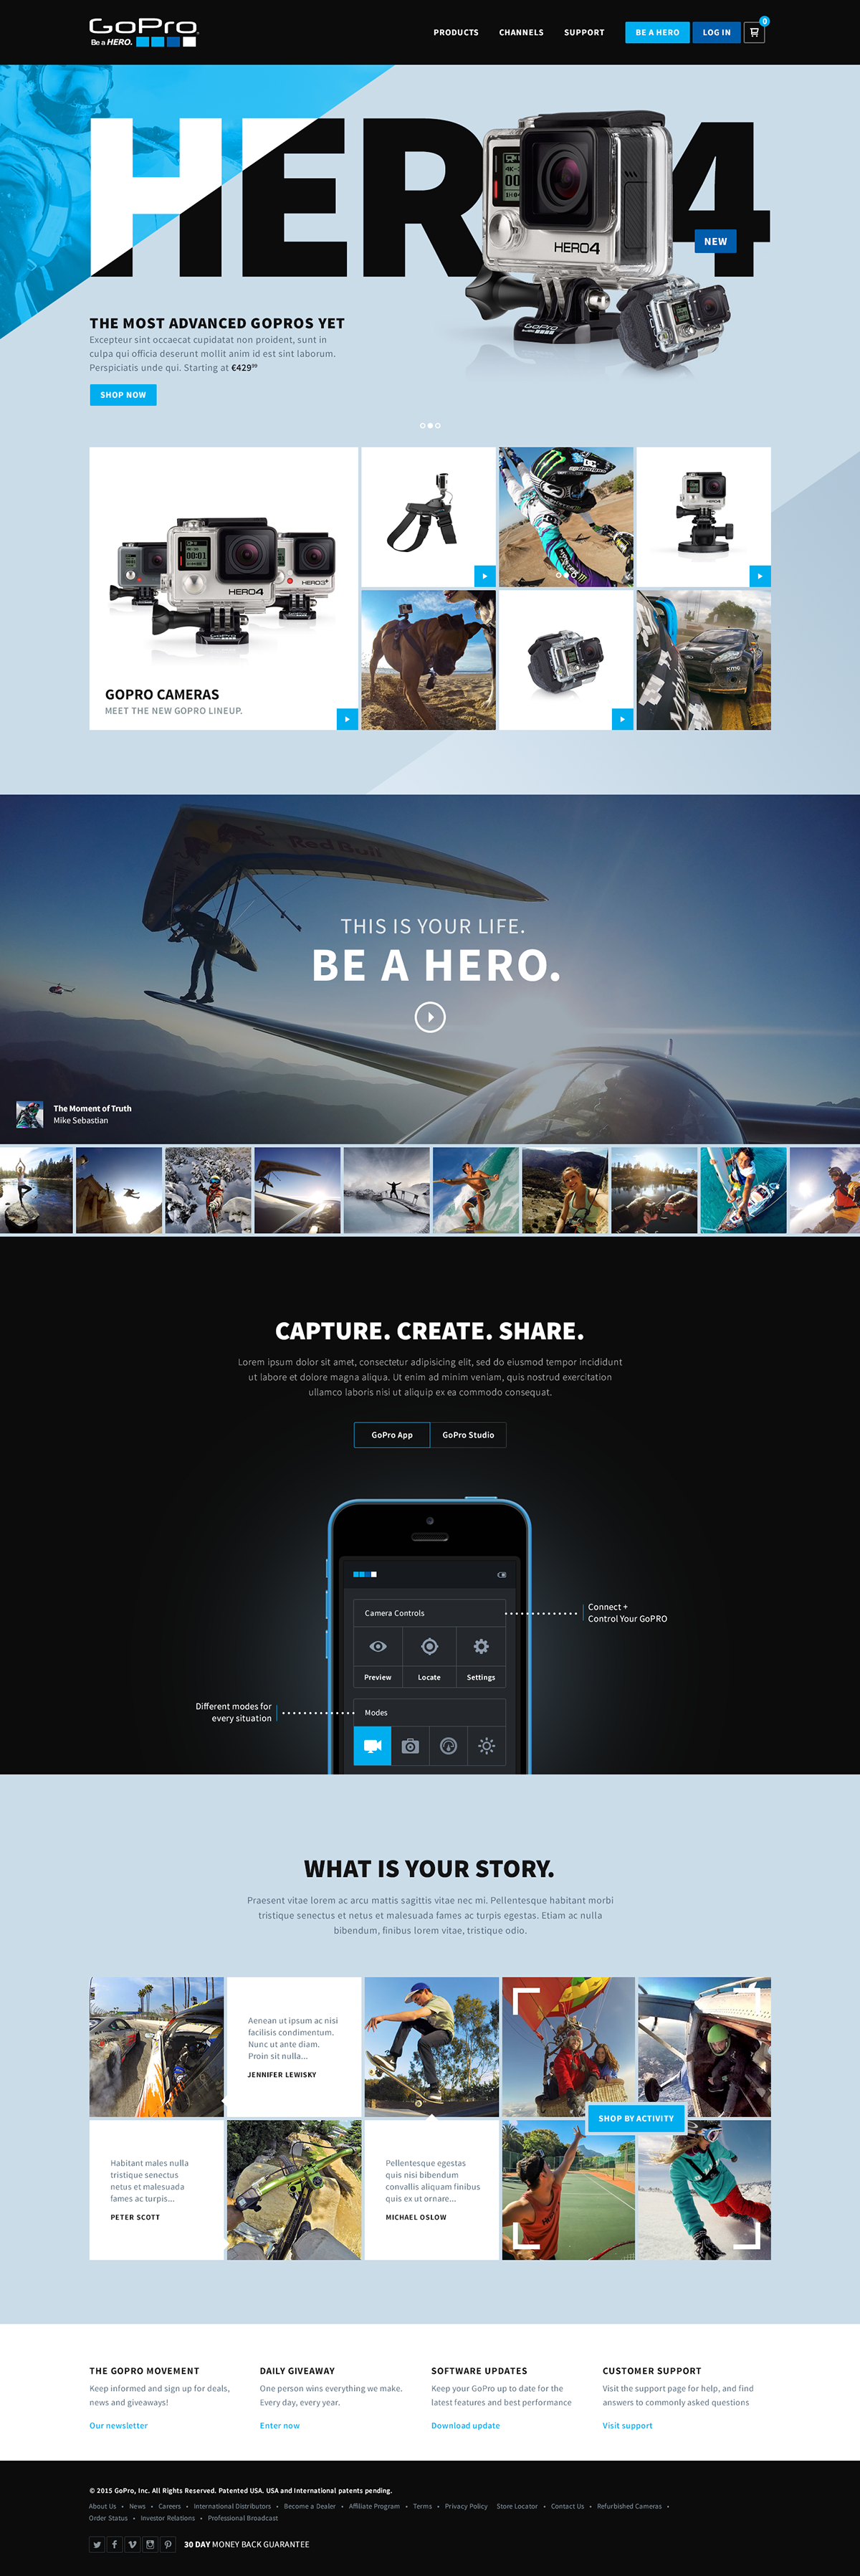 top result 50 luxury how to use gopro studio templates photos 2018